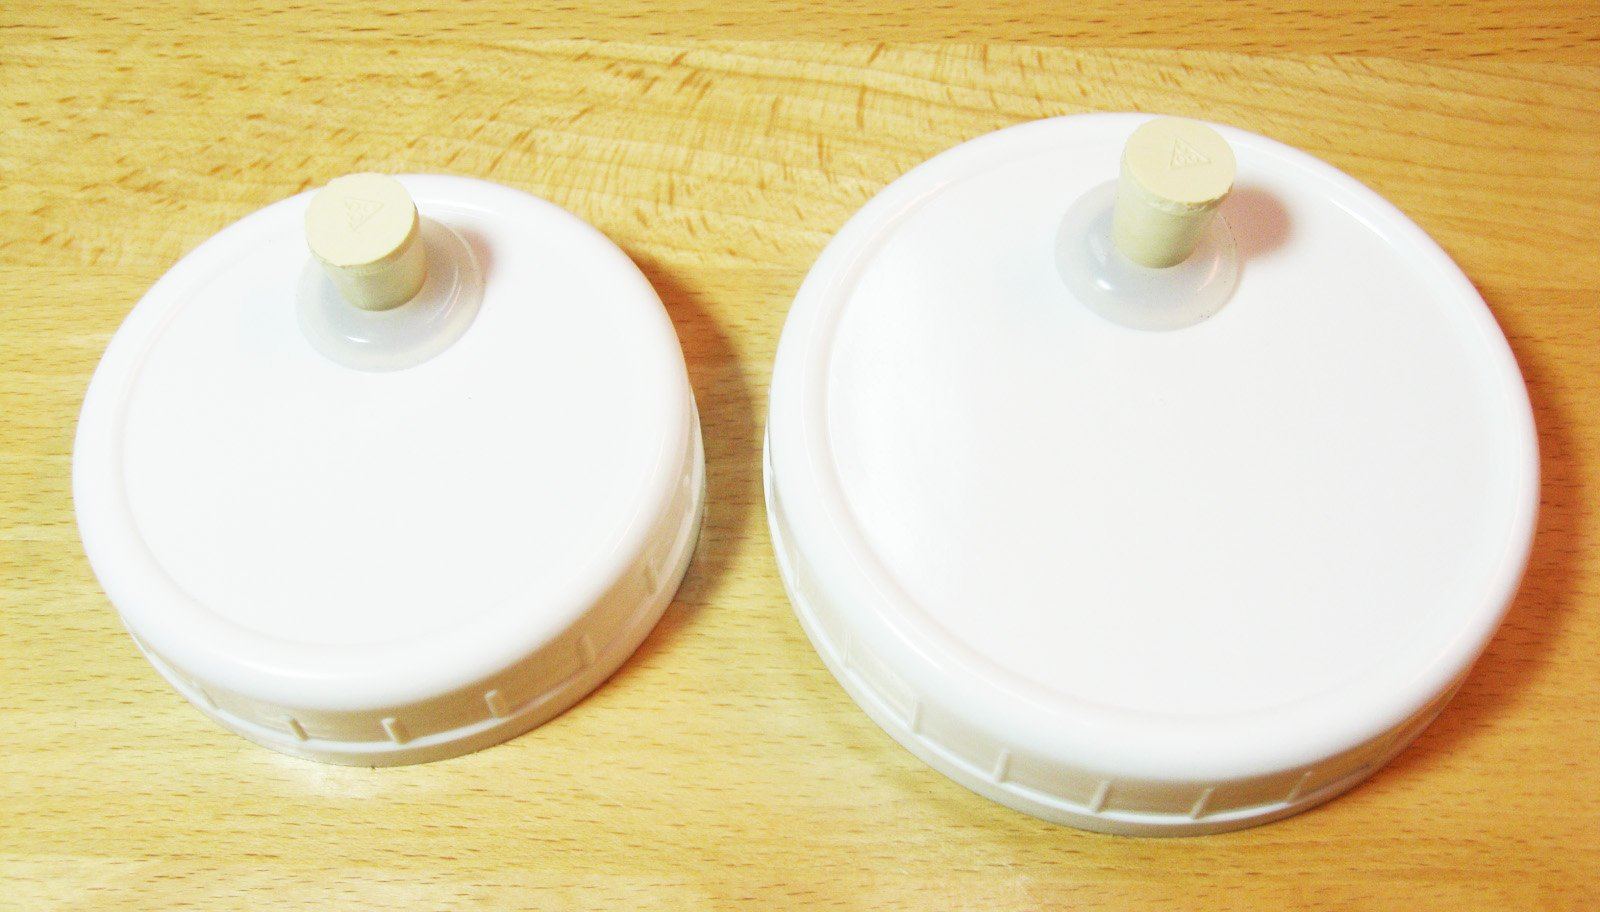 12 QRP Mason Jar Drinking / Fermentation Lids Caps Food Grade w/installed Grommets, Seals & Stoppers (12 WIDE MOUTH)